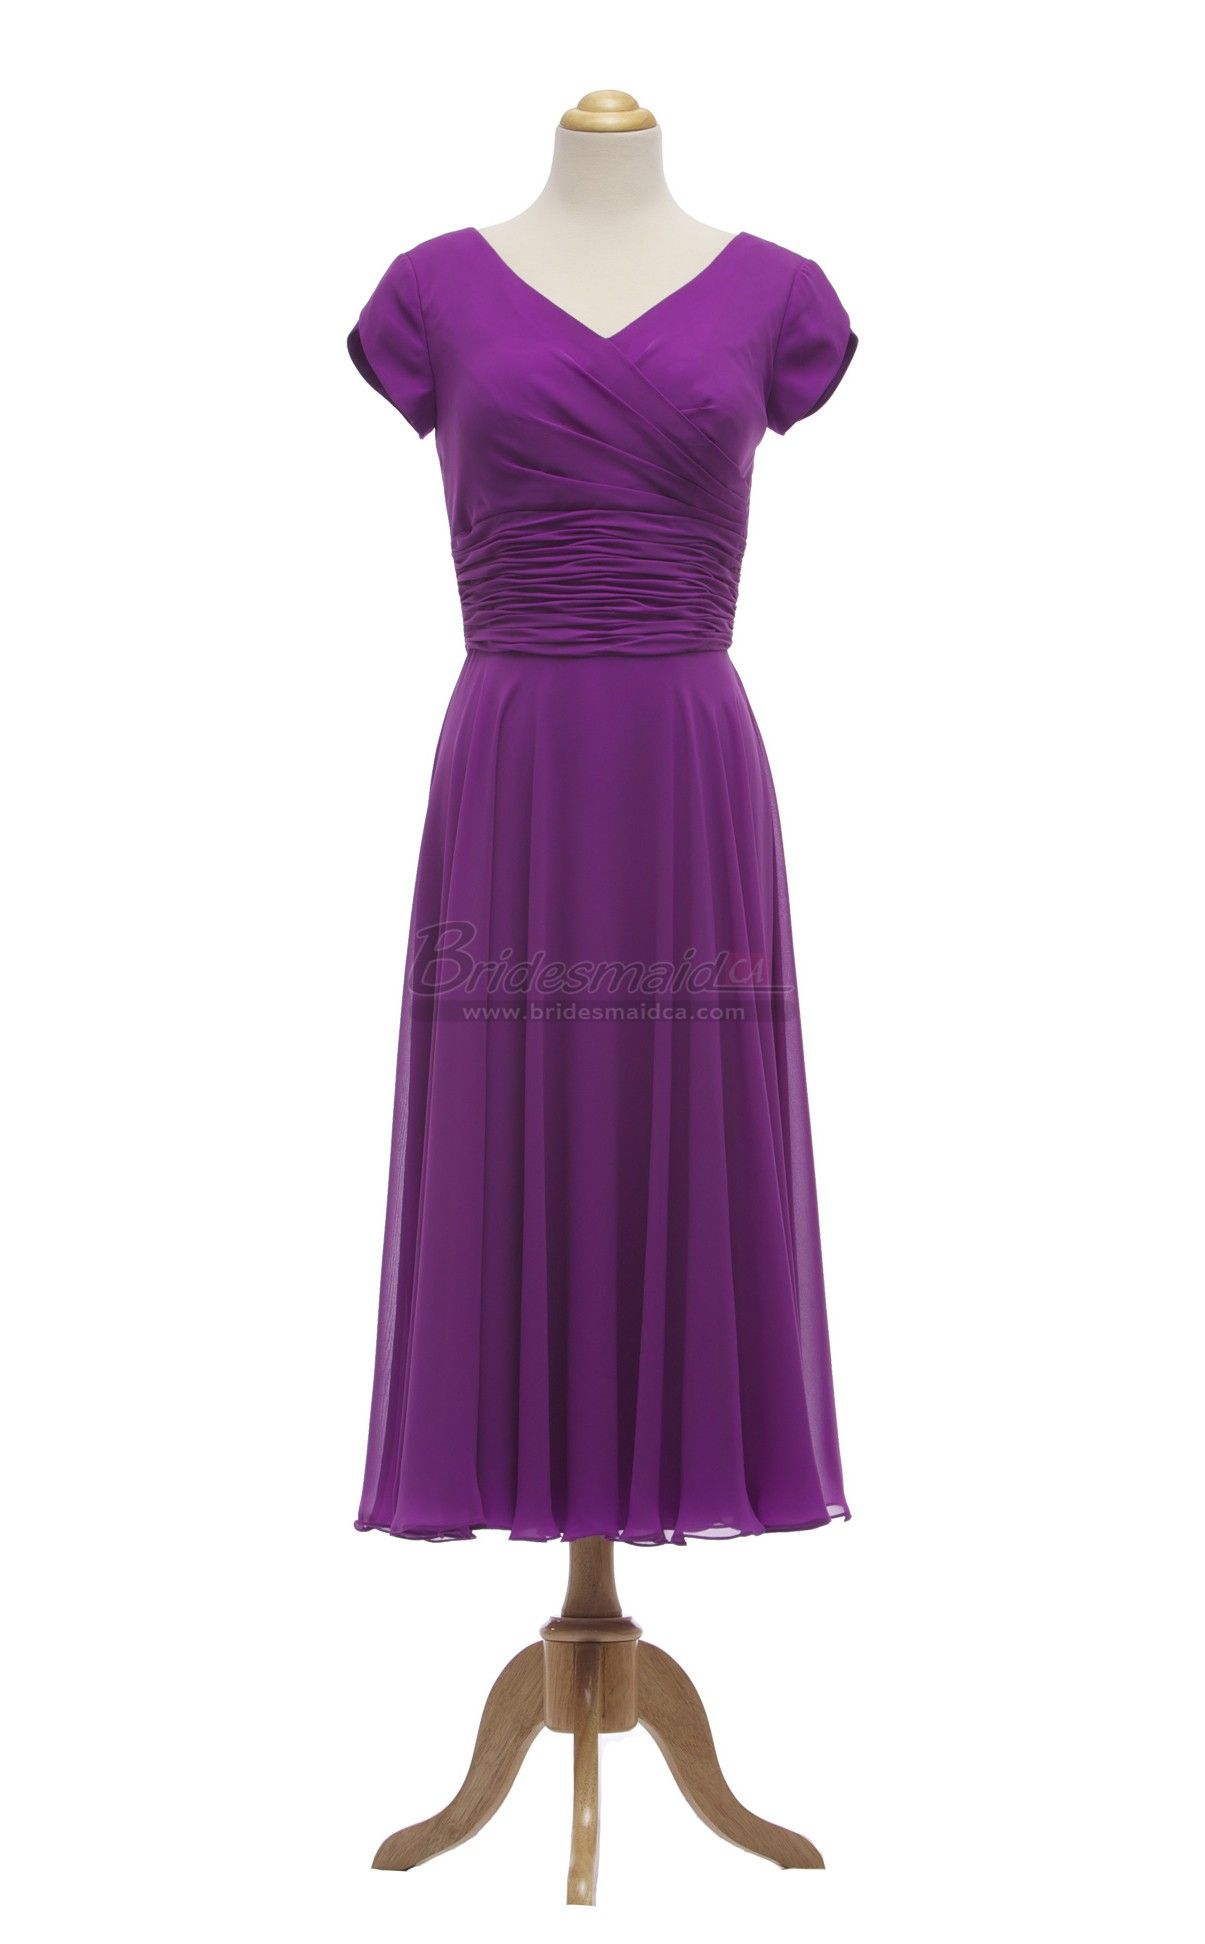 bridesmaid Tea Length Chiffon V Neck Grape Bridesmaid Dress with ...